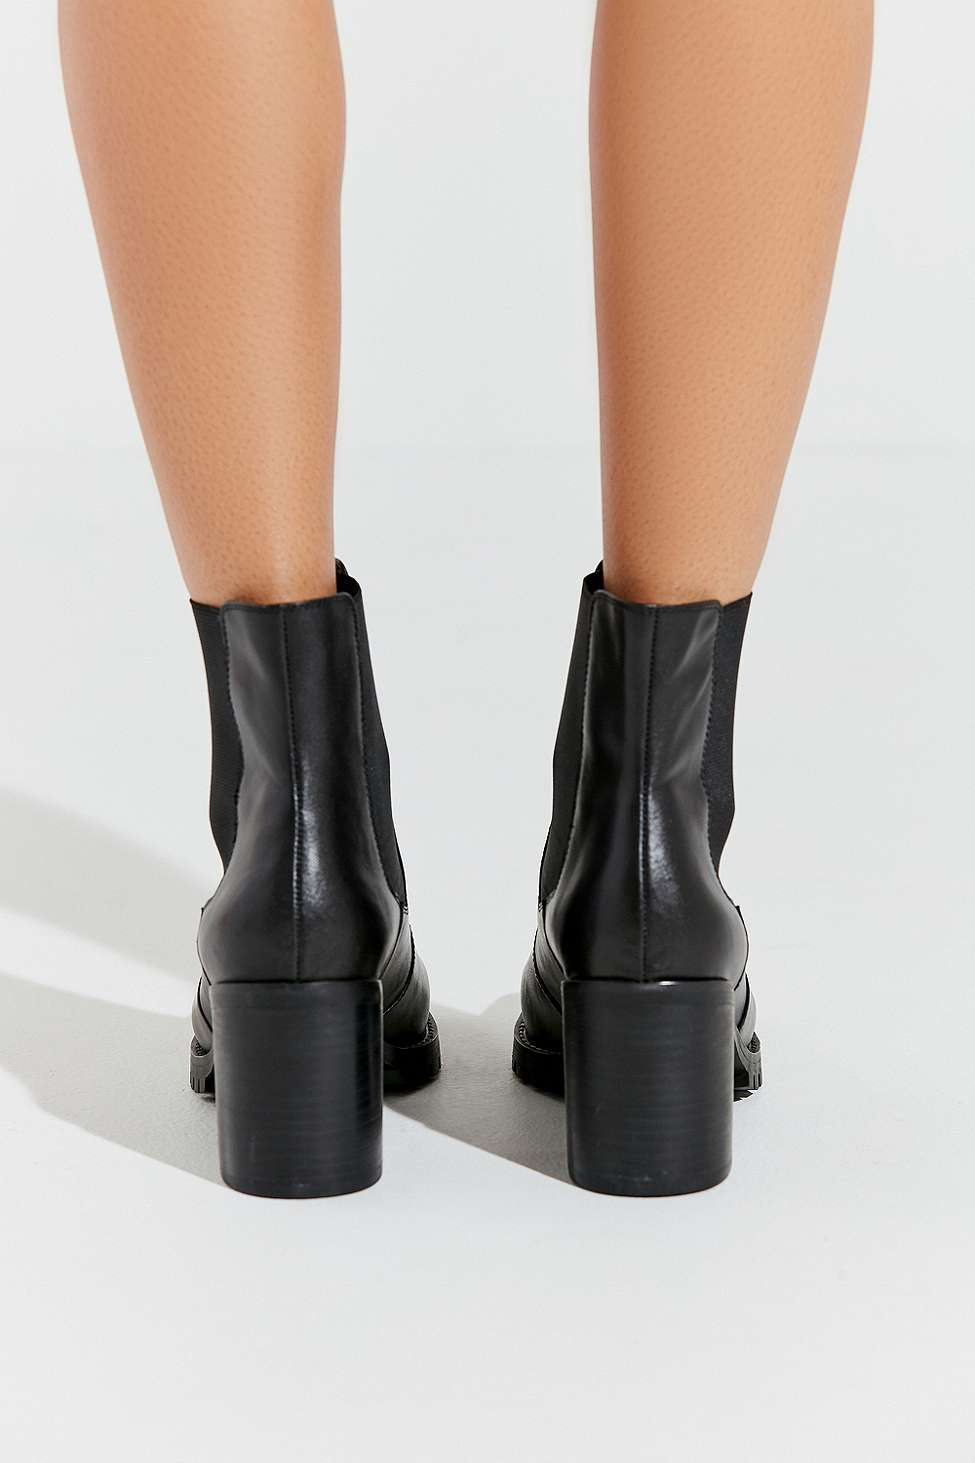 Uo Alex Square Toe Black Chelsea Boots by Urban Outfitters